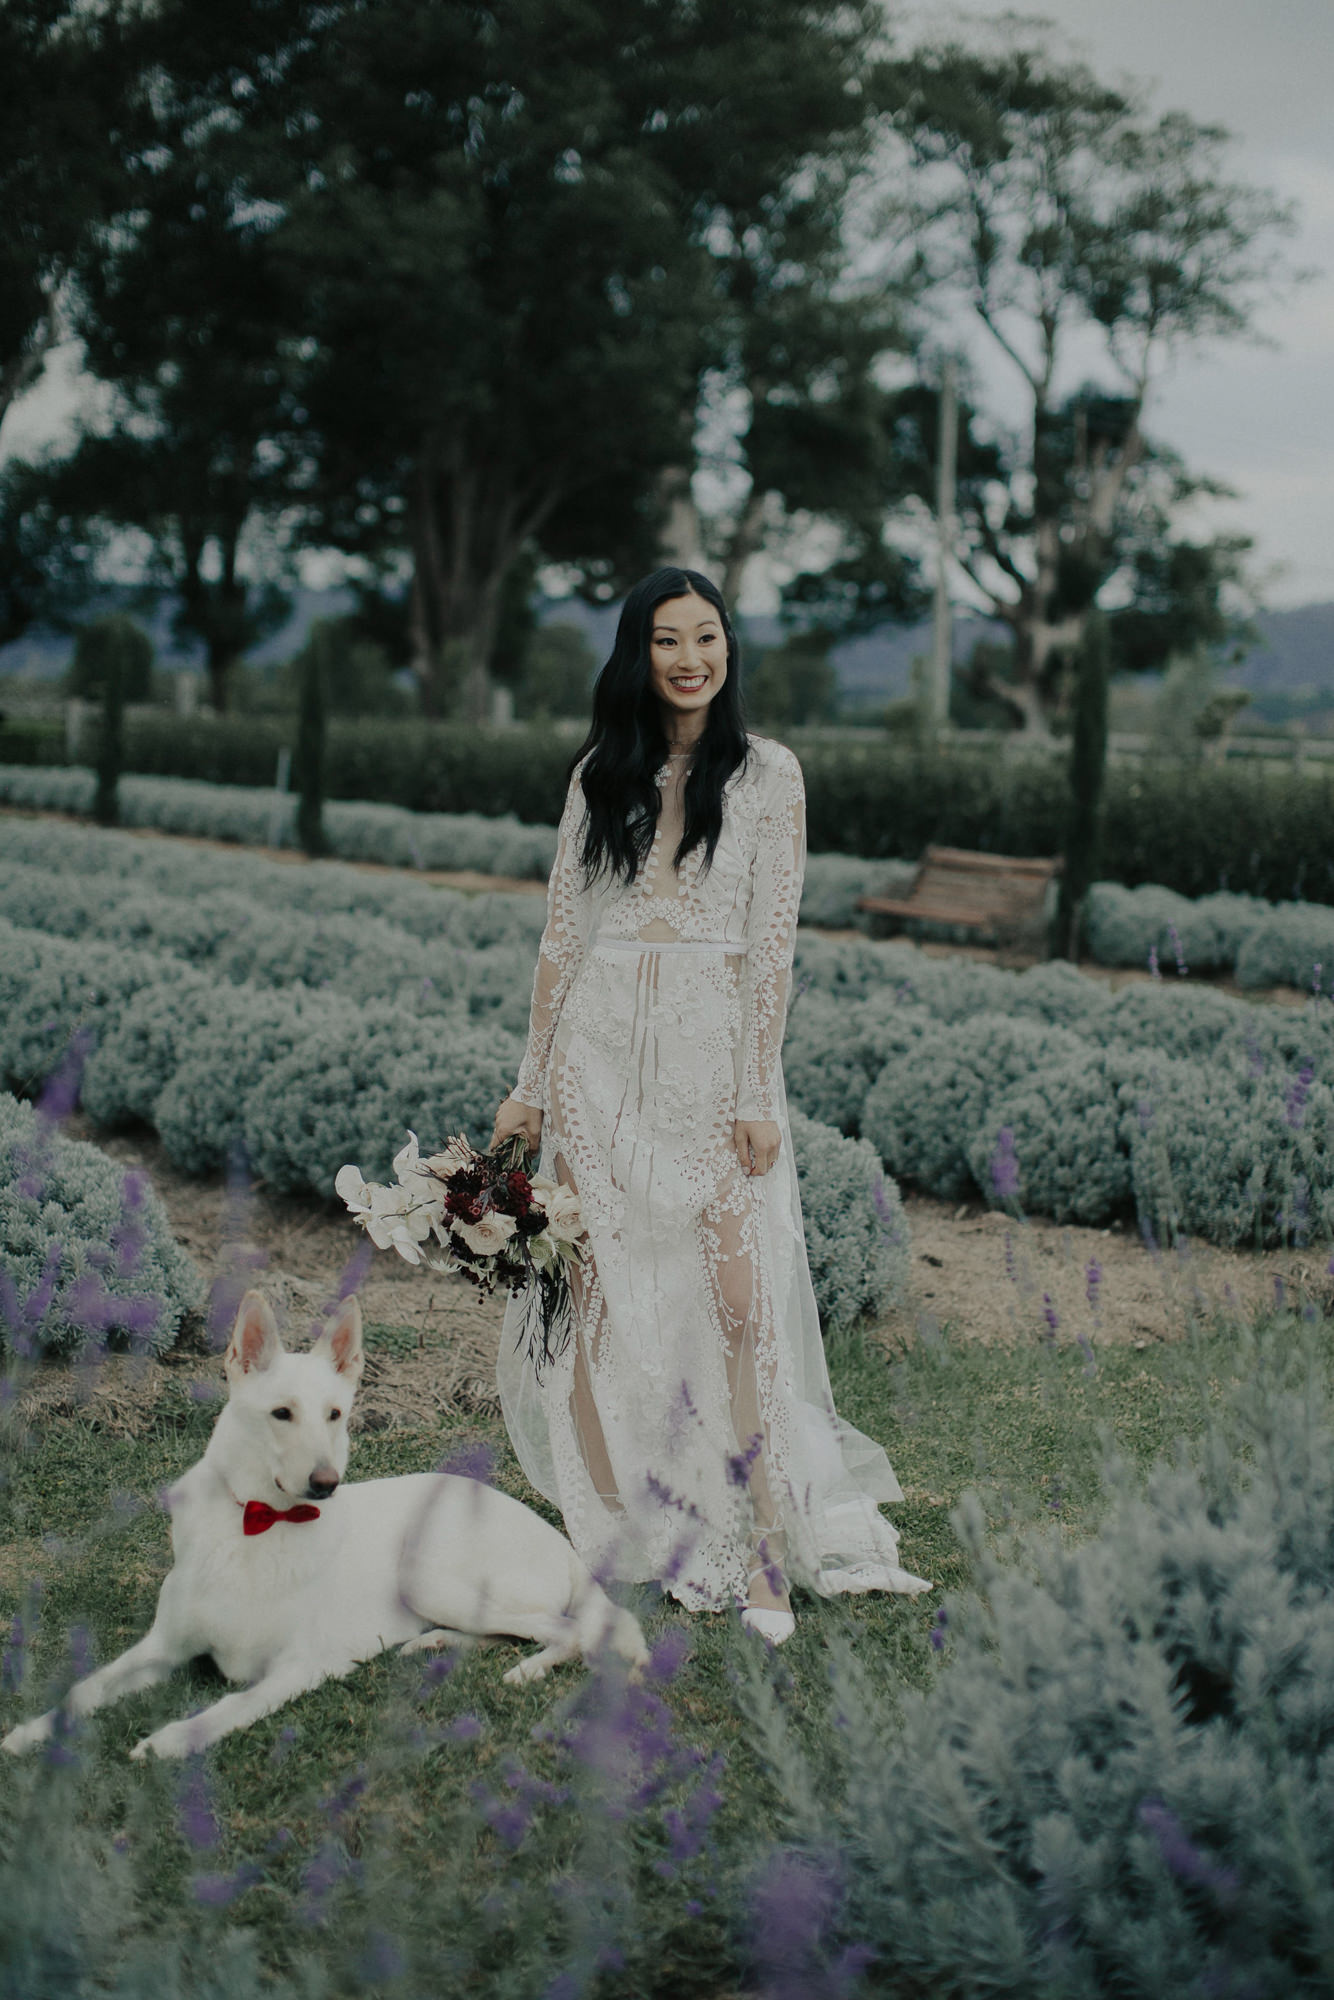 Asian bride standing in a field of lavender with bouquet and her dog, by Dan O' Day